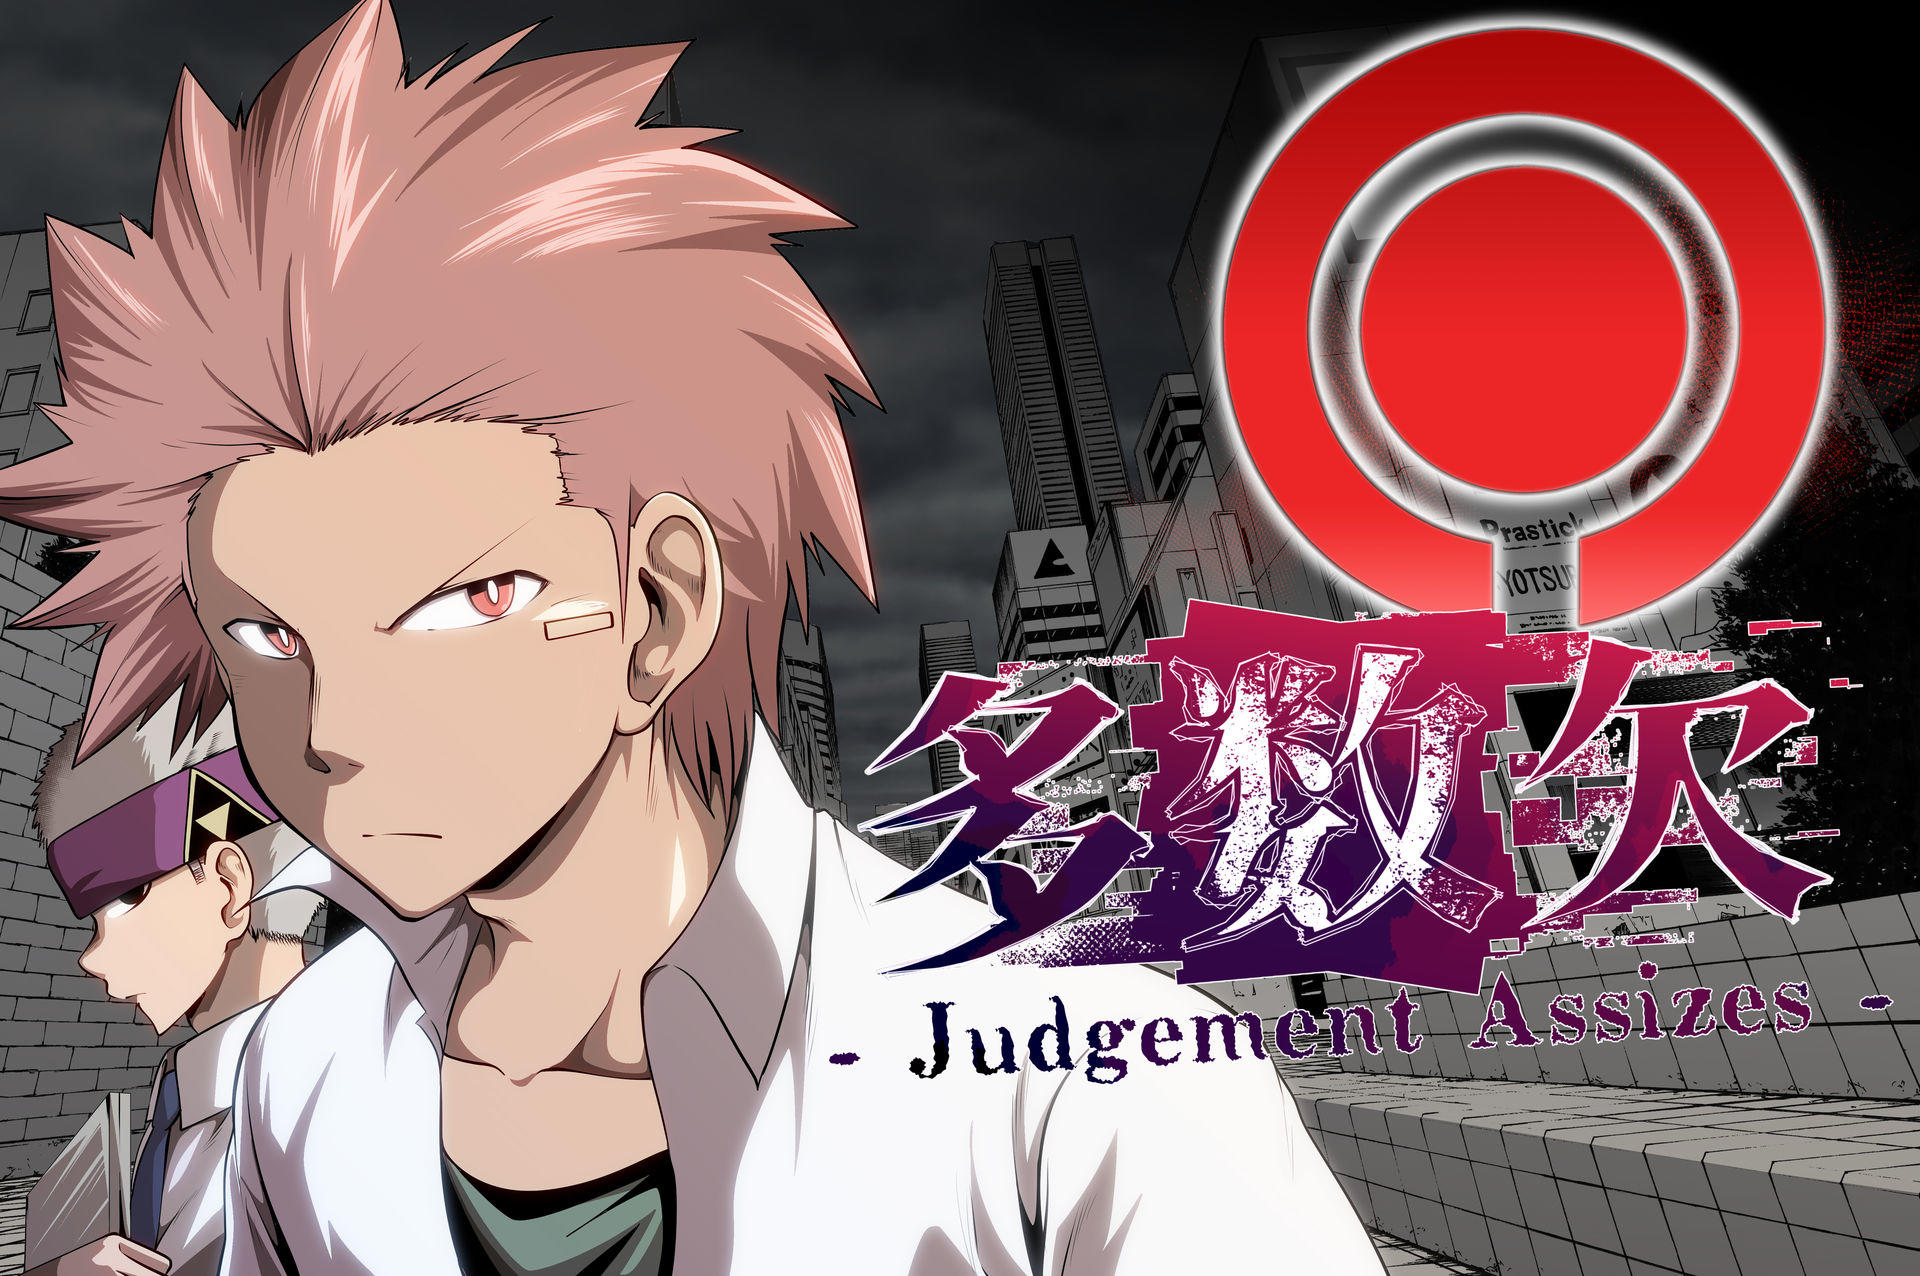 多数欠  -Judgement Assizes-